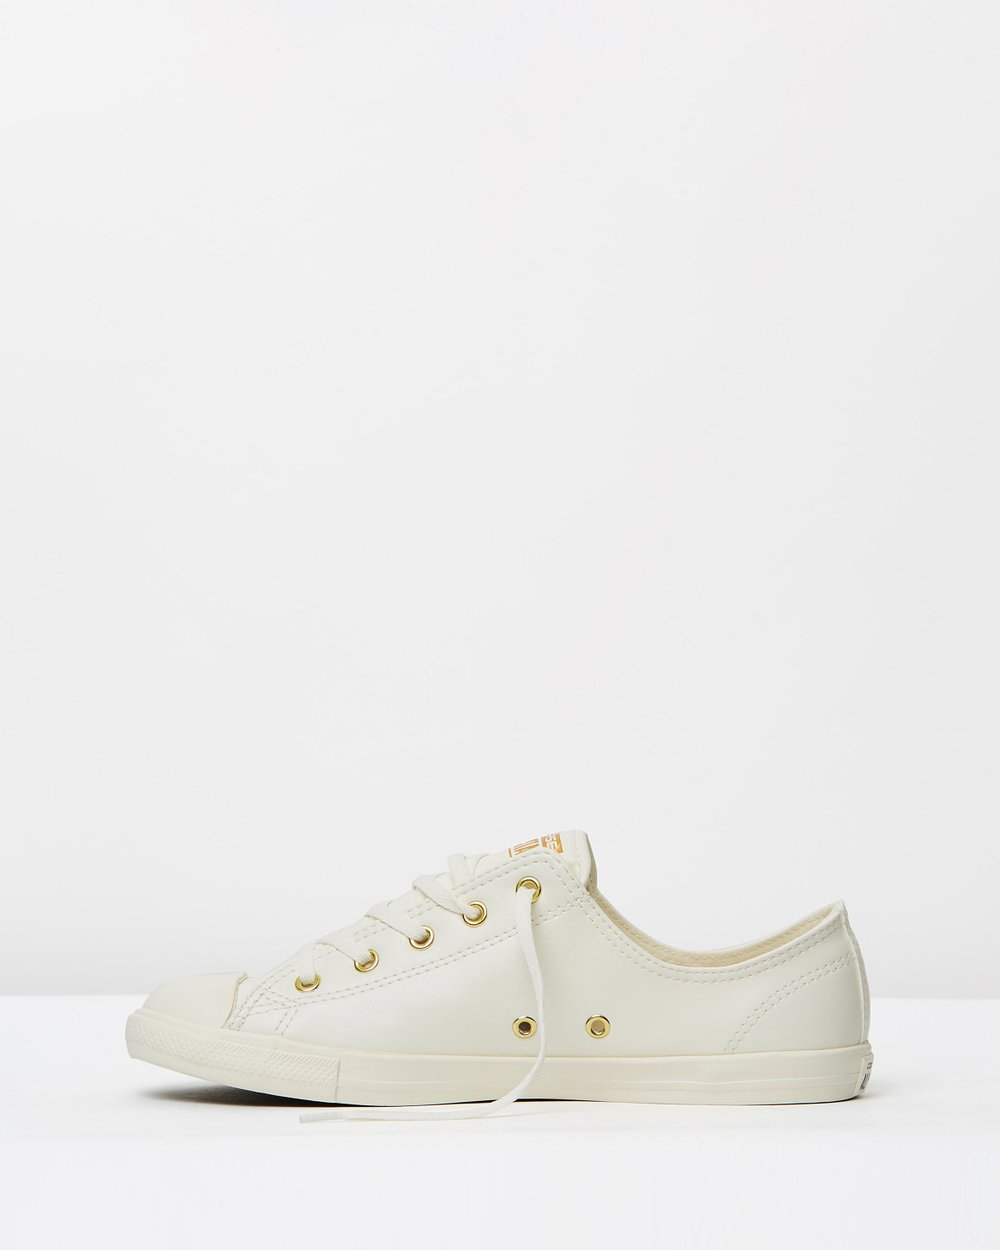 Converse Chuck Taylor Women s All Star Dainty Leather Ox by Converse Online   45f2649ba5f41